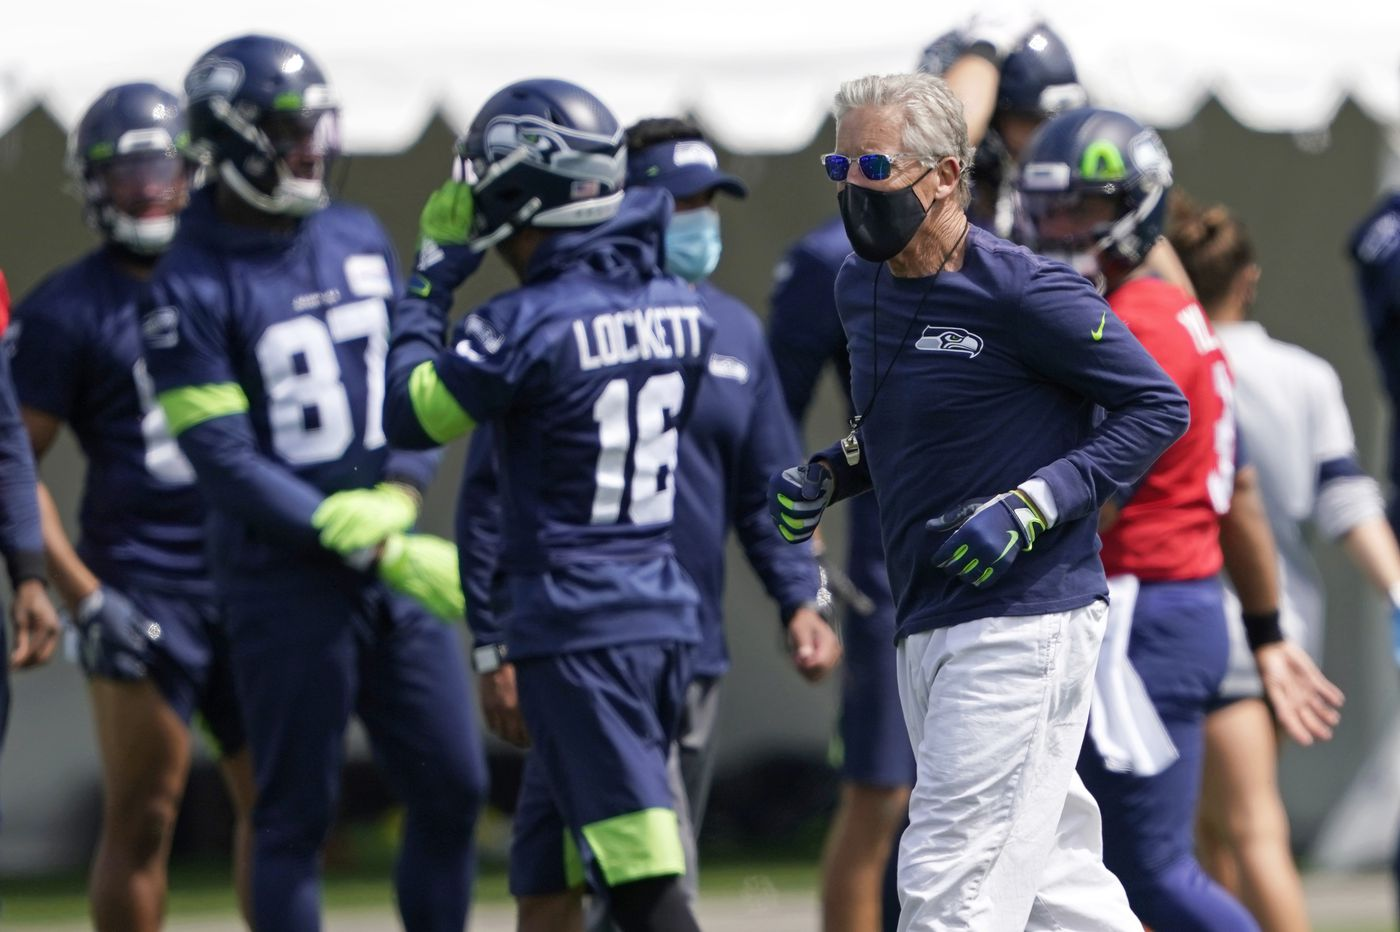 Kemah Siverand released from Seahawks after sneaking girl into team hotel, Kennedy Chandler commits to Tennessee, and other sports news